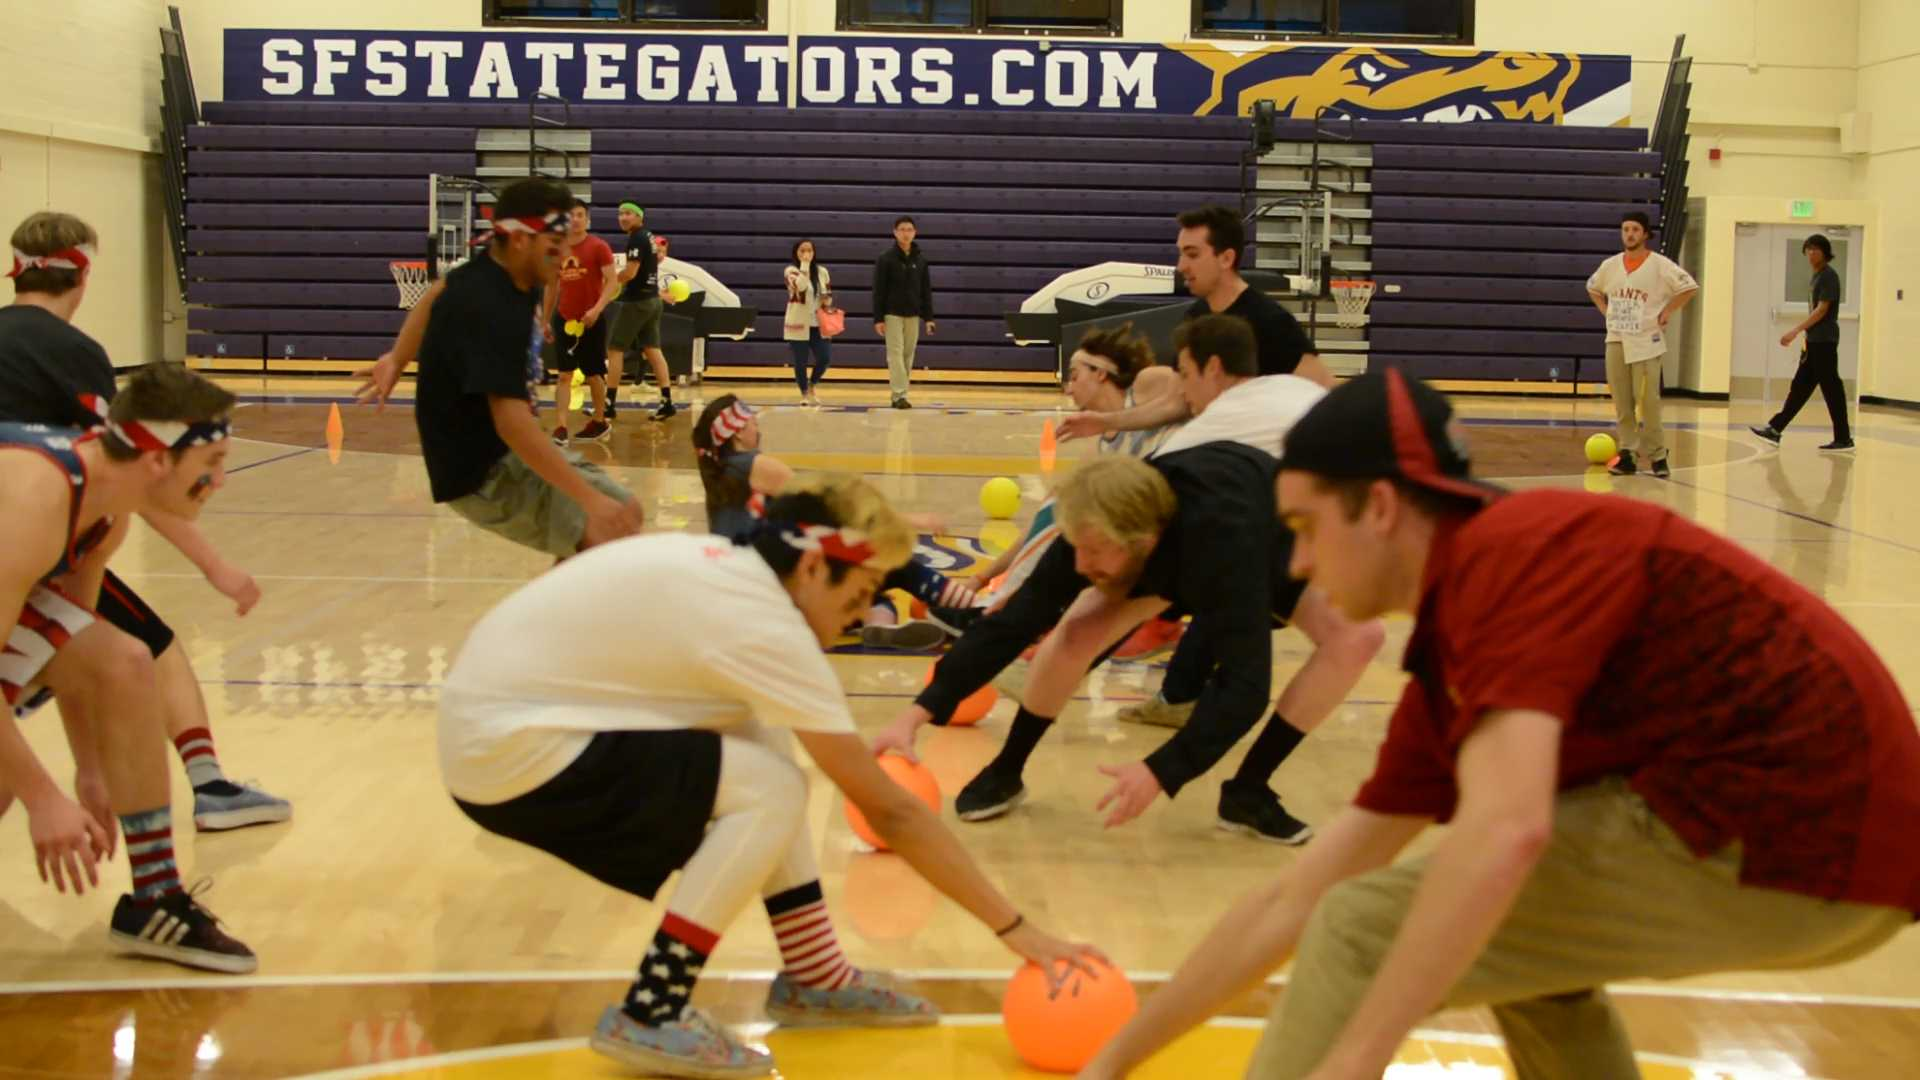 Students gear up for Halloween dodgeball